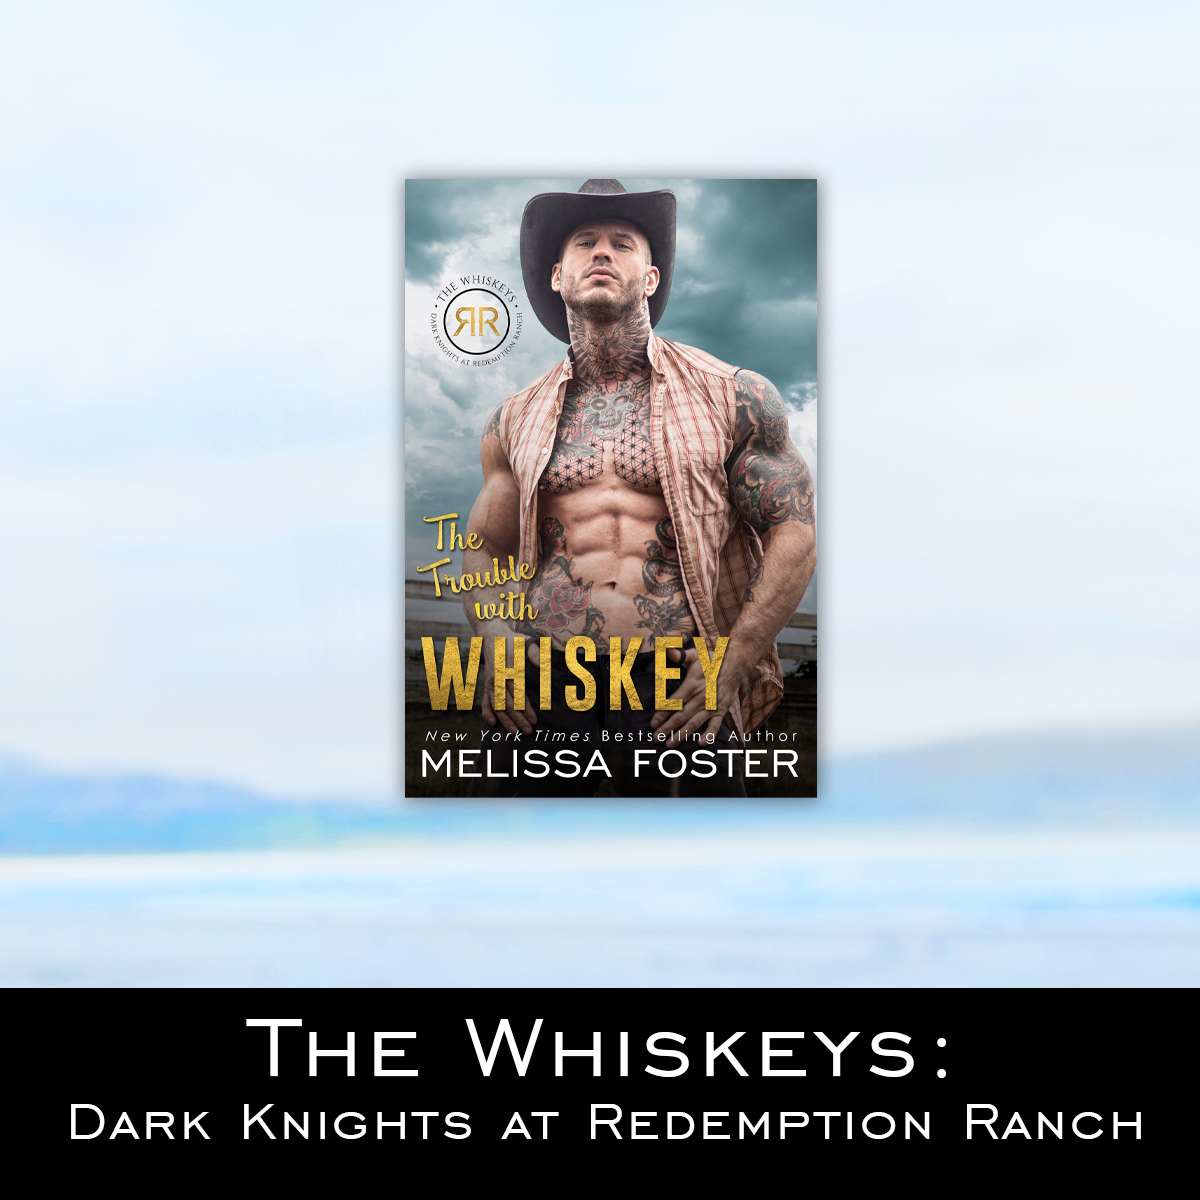 The Whiskeys: Dark Knights at Redemption Ranch by Melissa Foster